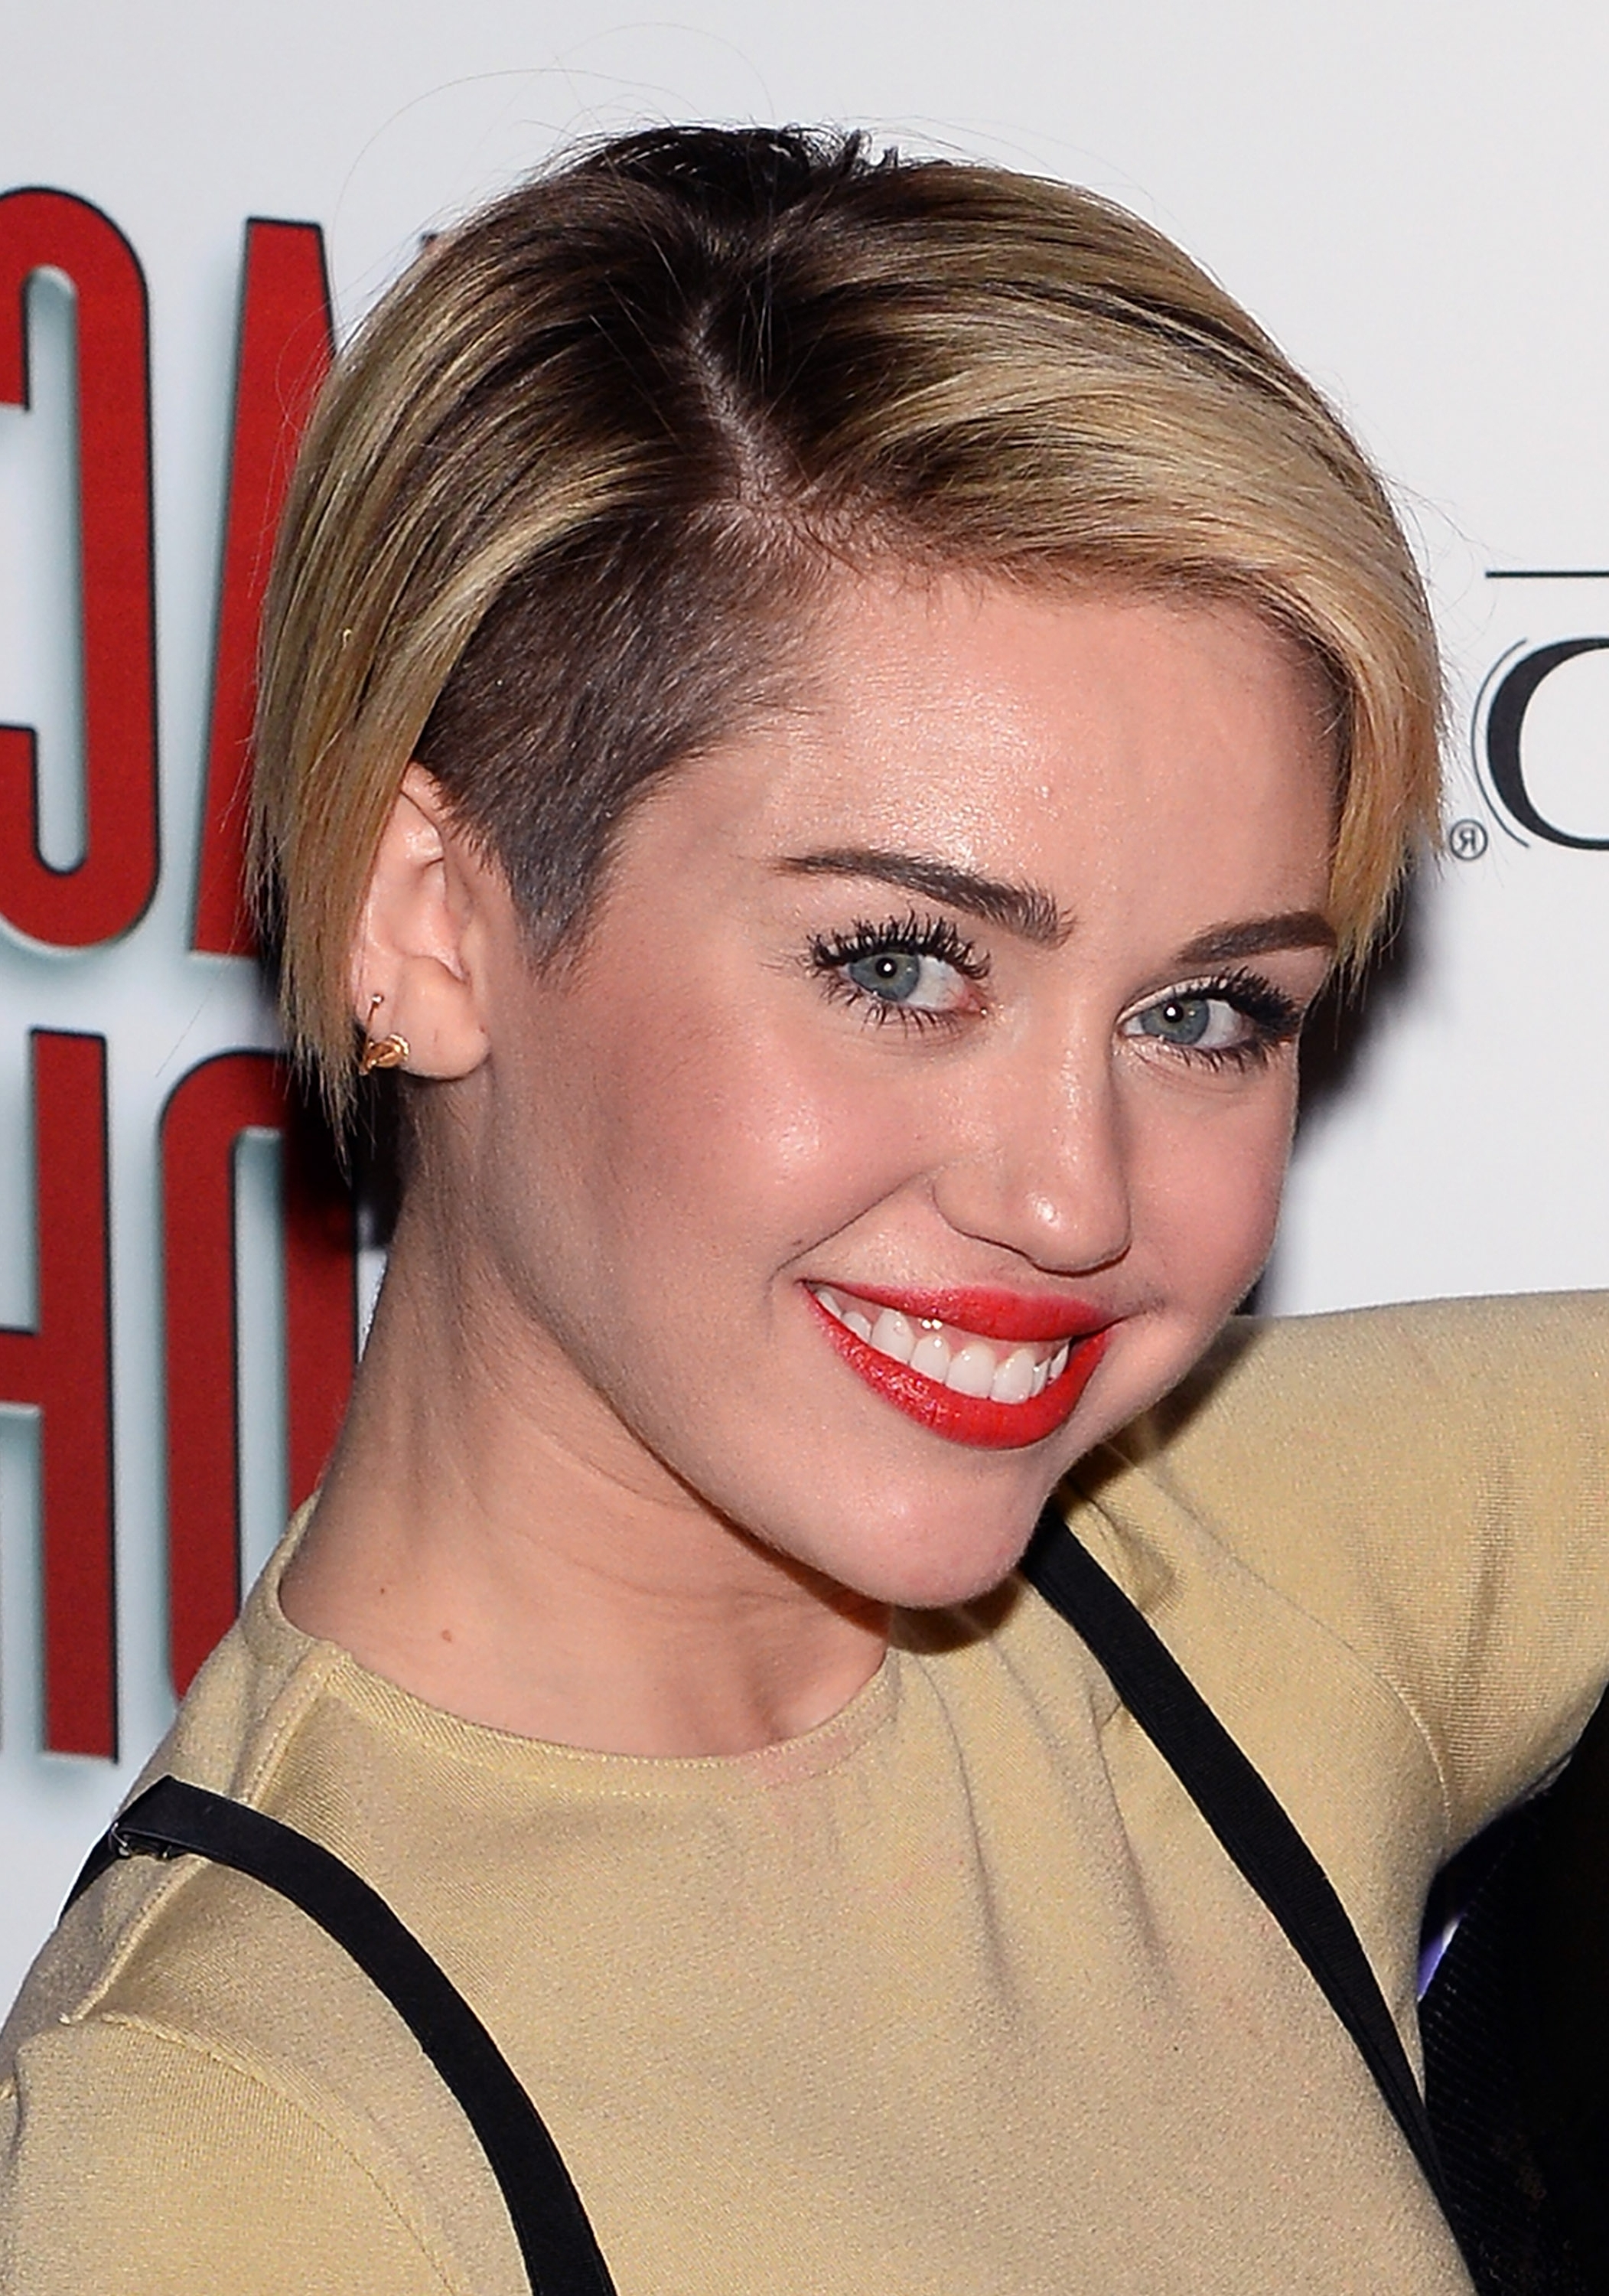 Miley Cyrus Grows Out Her Pixie Haircut | Stylecaster In Most Up To Date Miley Cyrus Pixie Hairstyles (View 5 of 15)